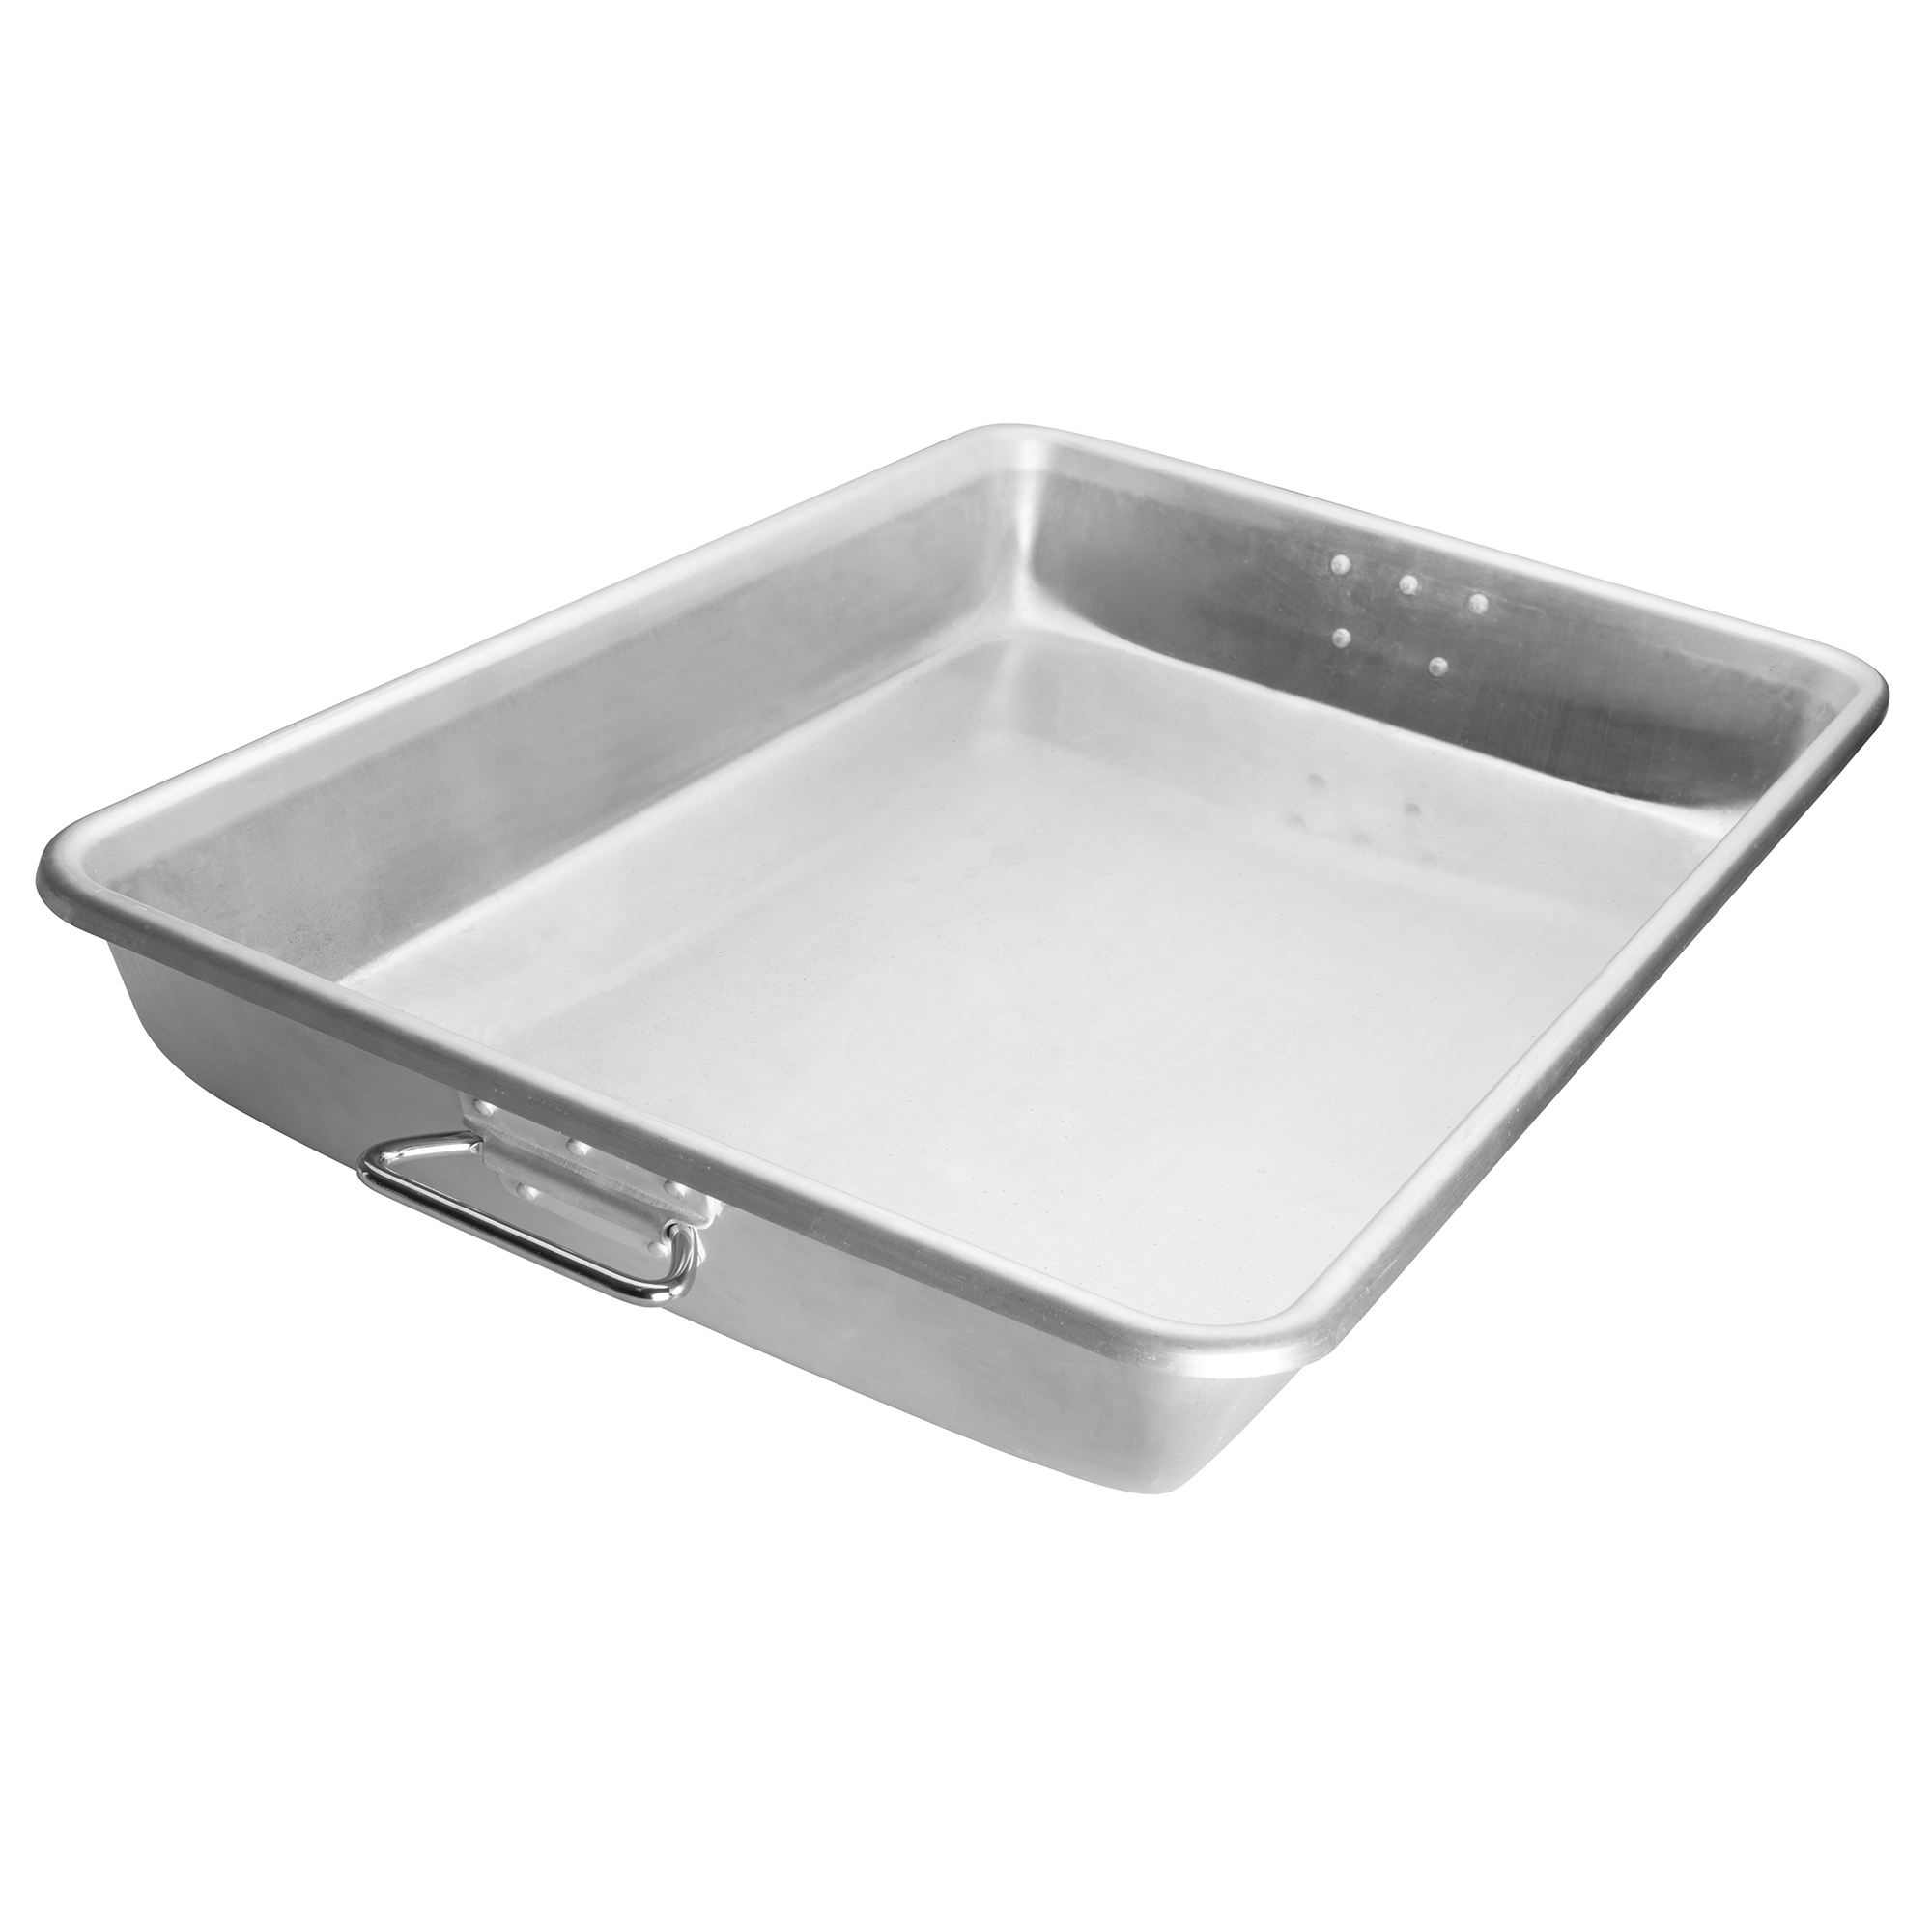 Winco ALRP-1826H roasting pan